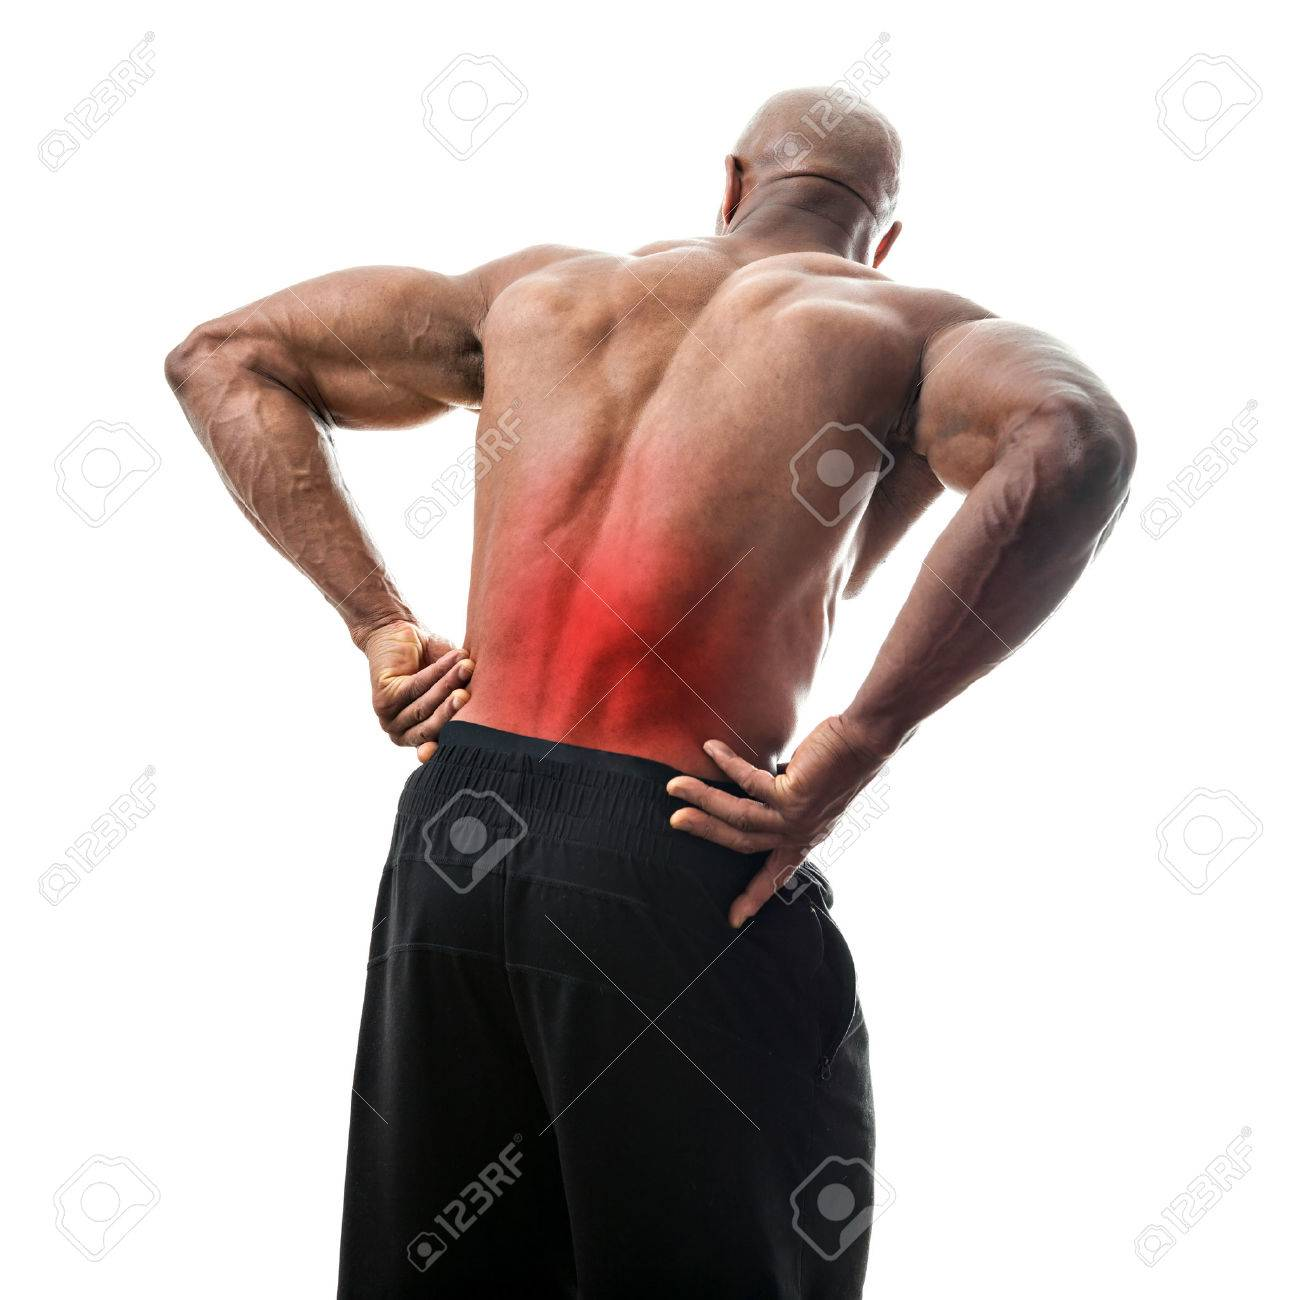 Fit man or athlete reaching for his lower back in pain with the painful area highlighted in red. Stock Photo - 43825899